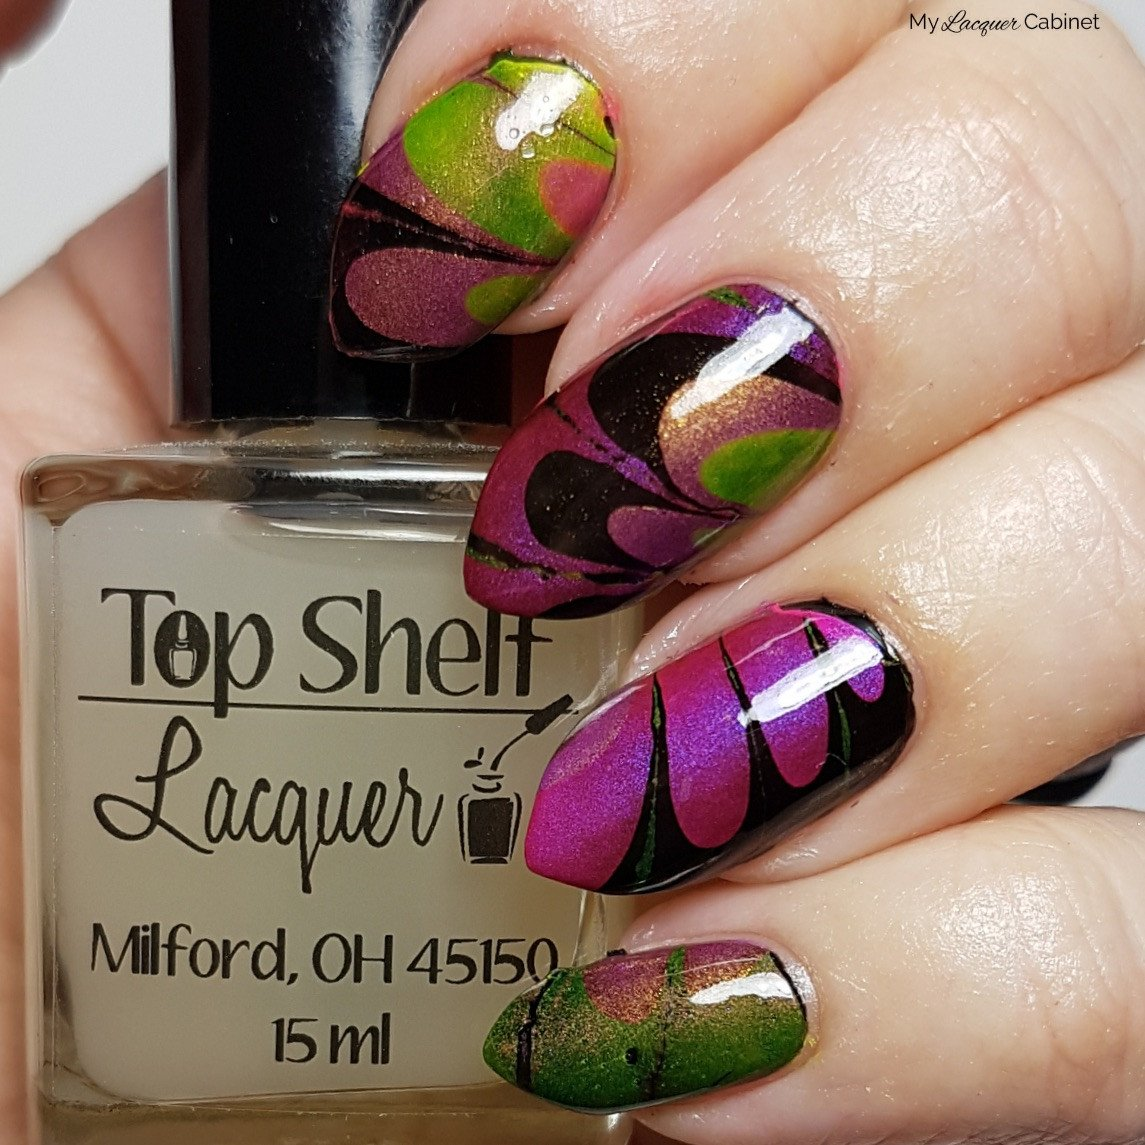 Bar Mix Clear Watermarble 1 Bottle Top Shelf Lacquer